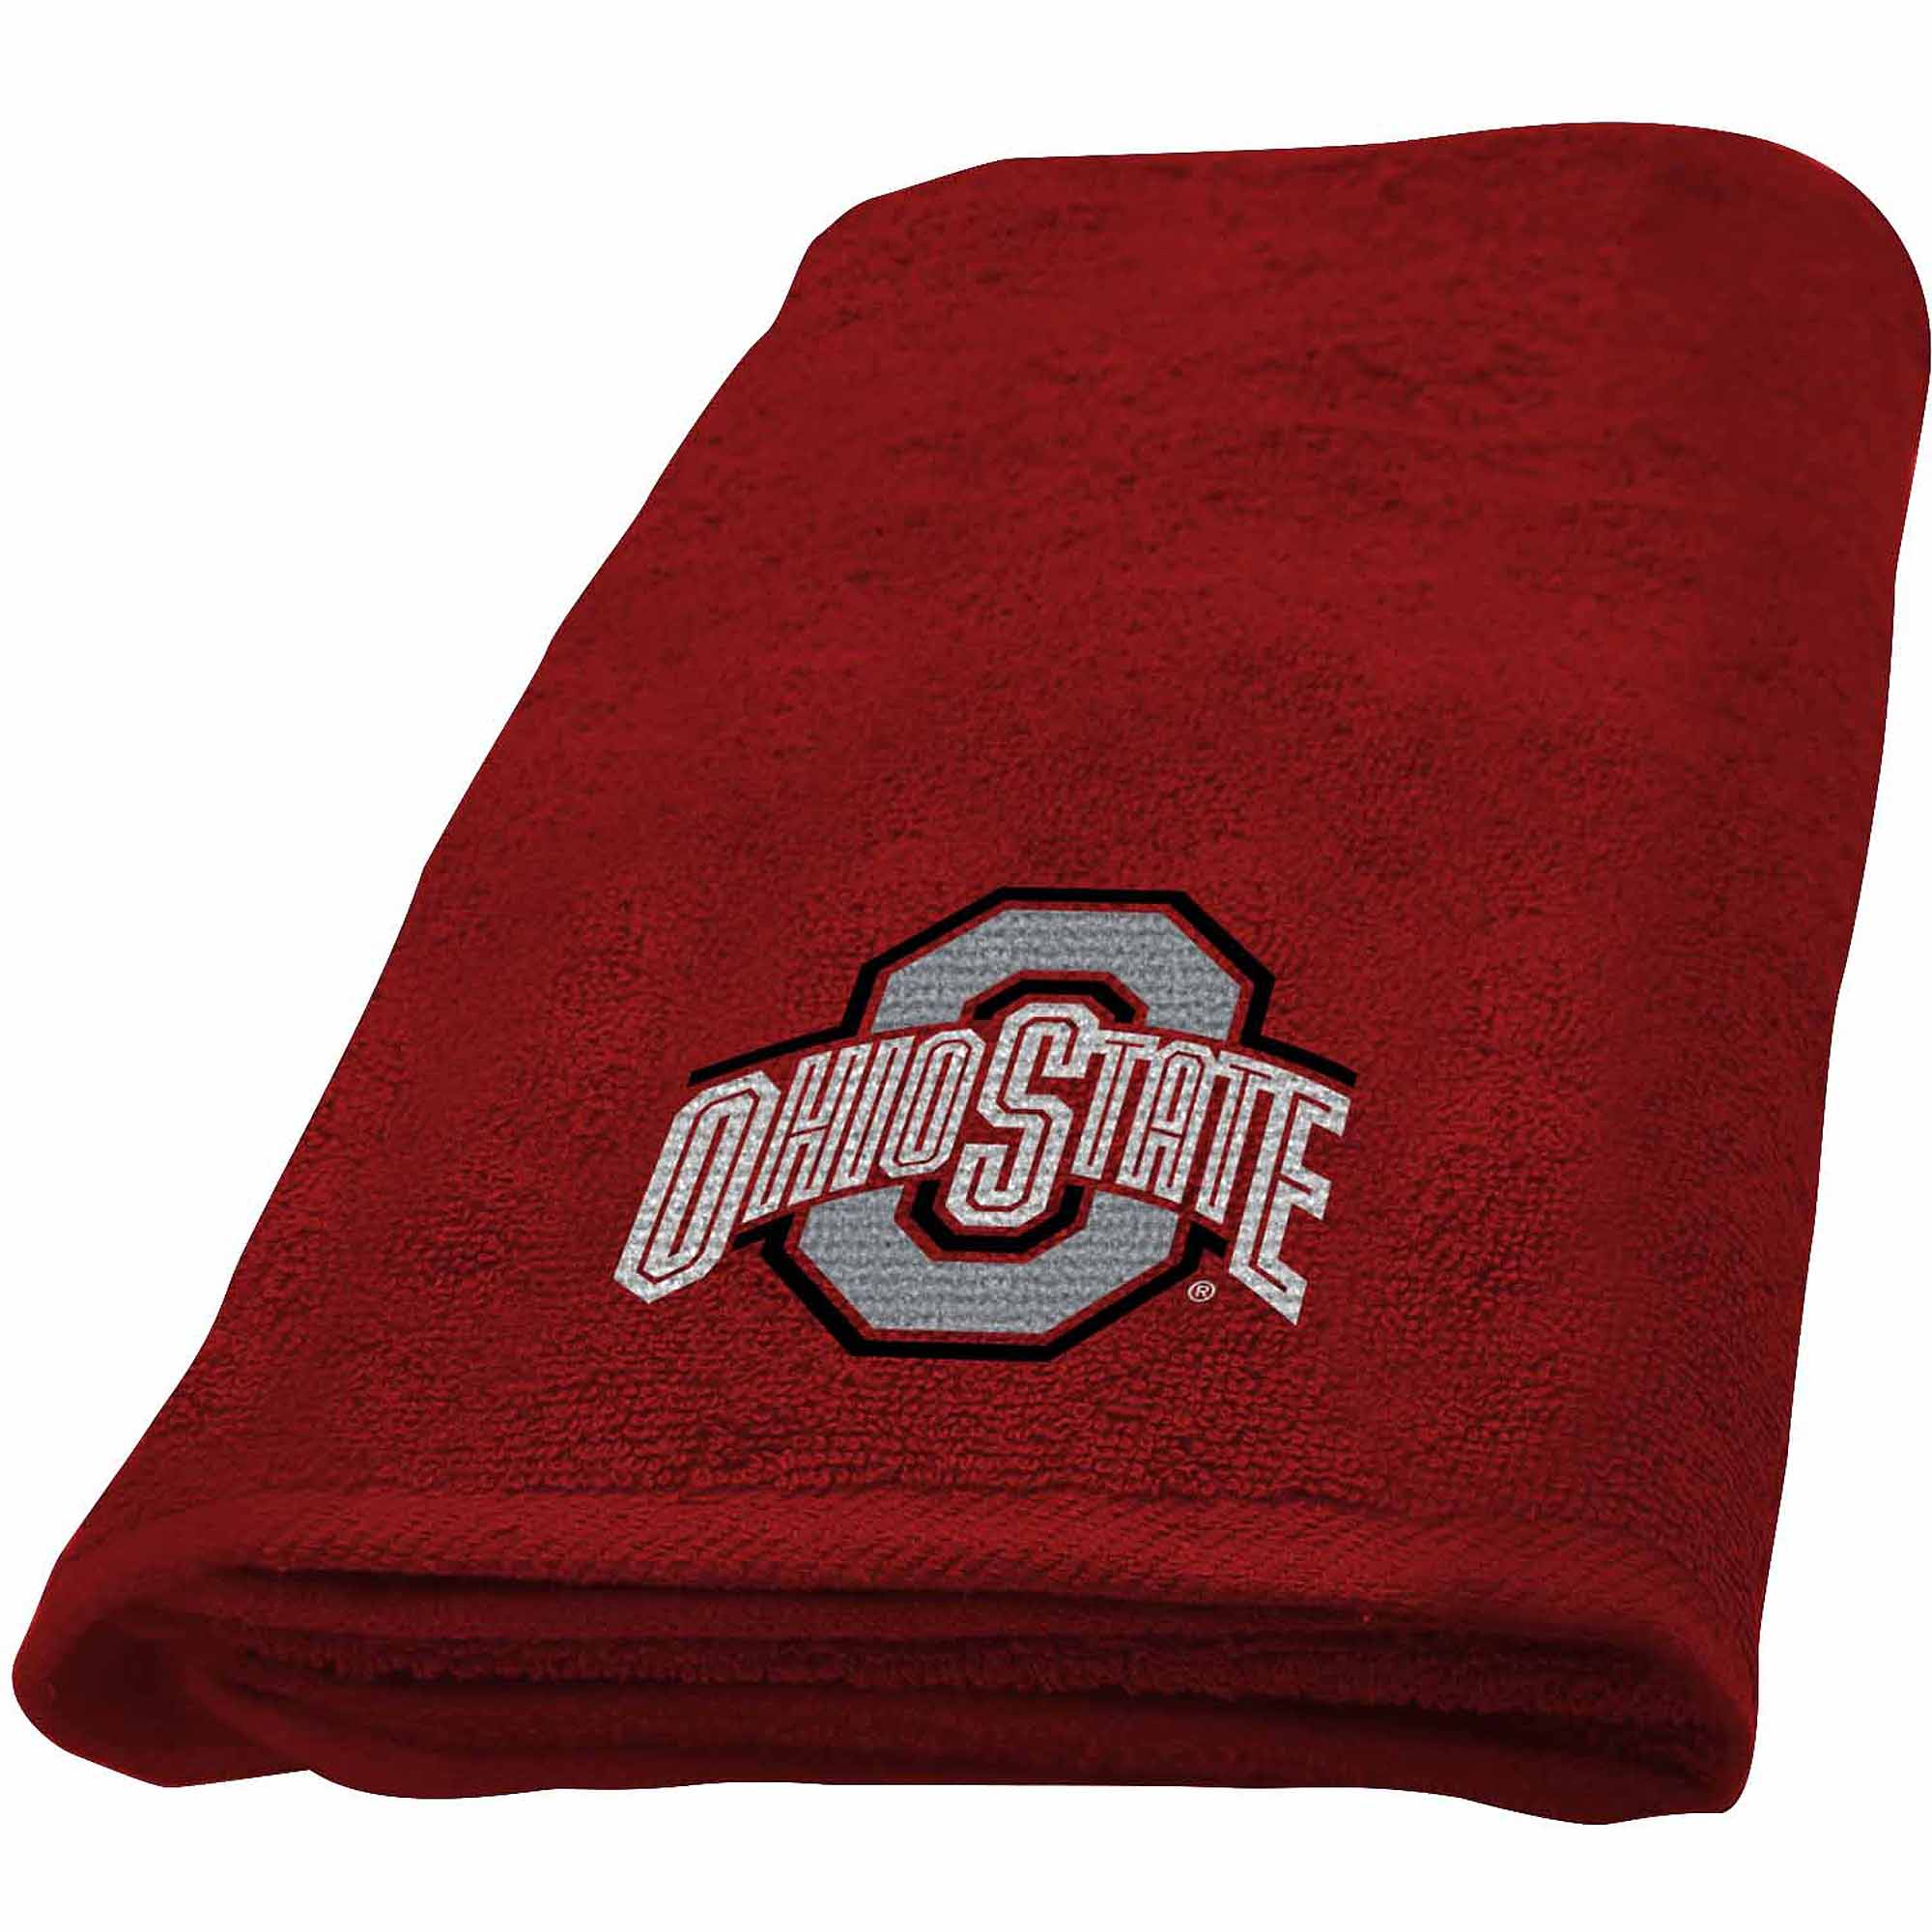 NCAA Ohio State Hand Towel, 1 Each